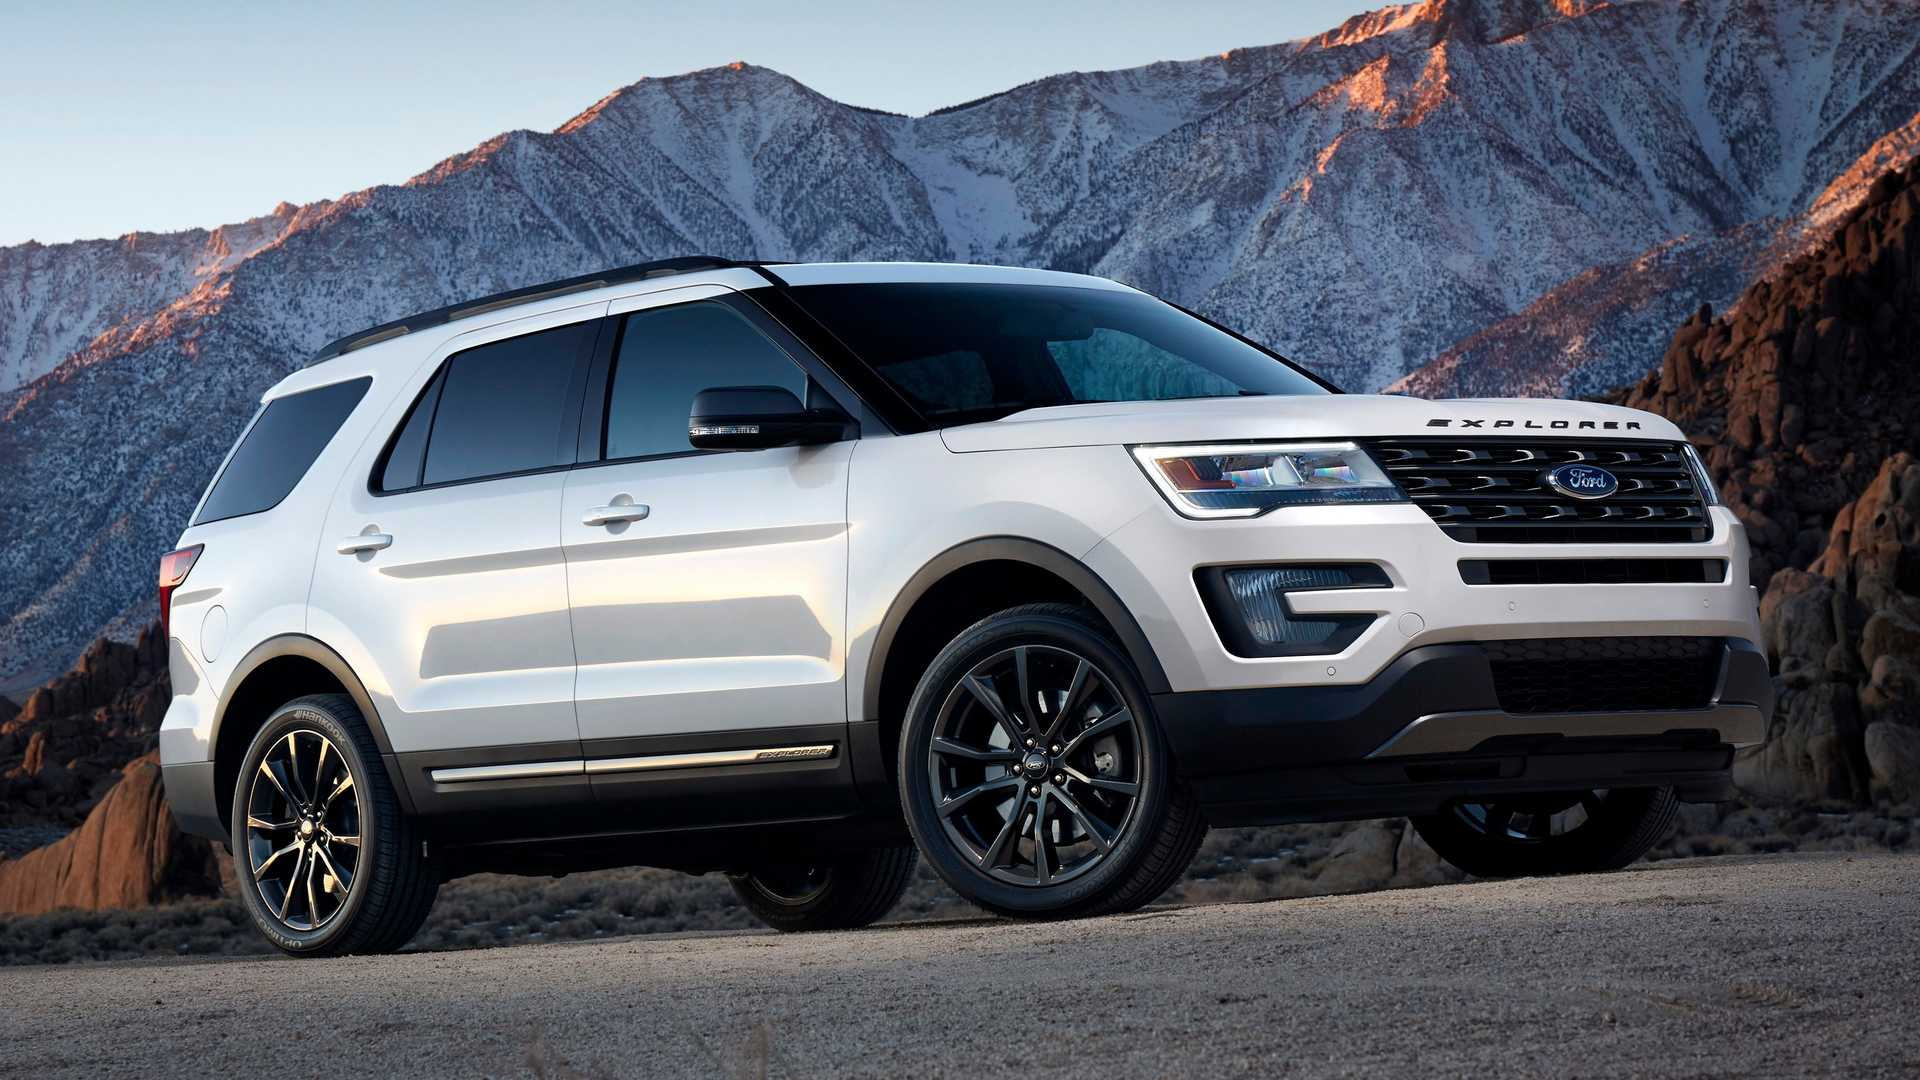 11 Ford Explorer With $11,11 Discount Might Tempt You | ford explorer